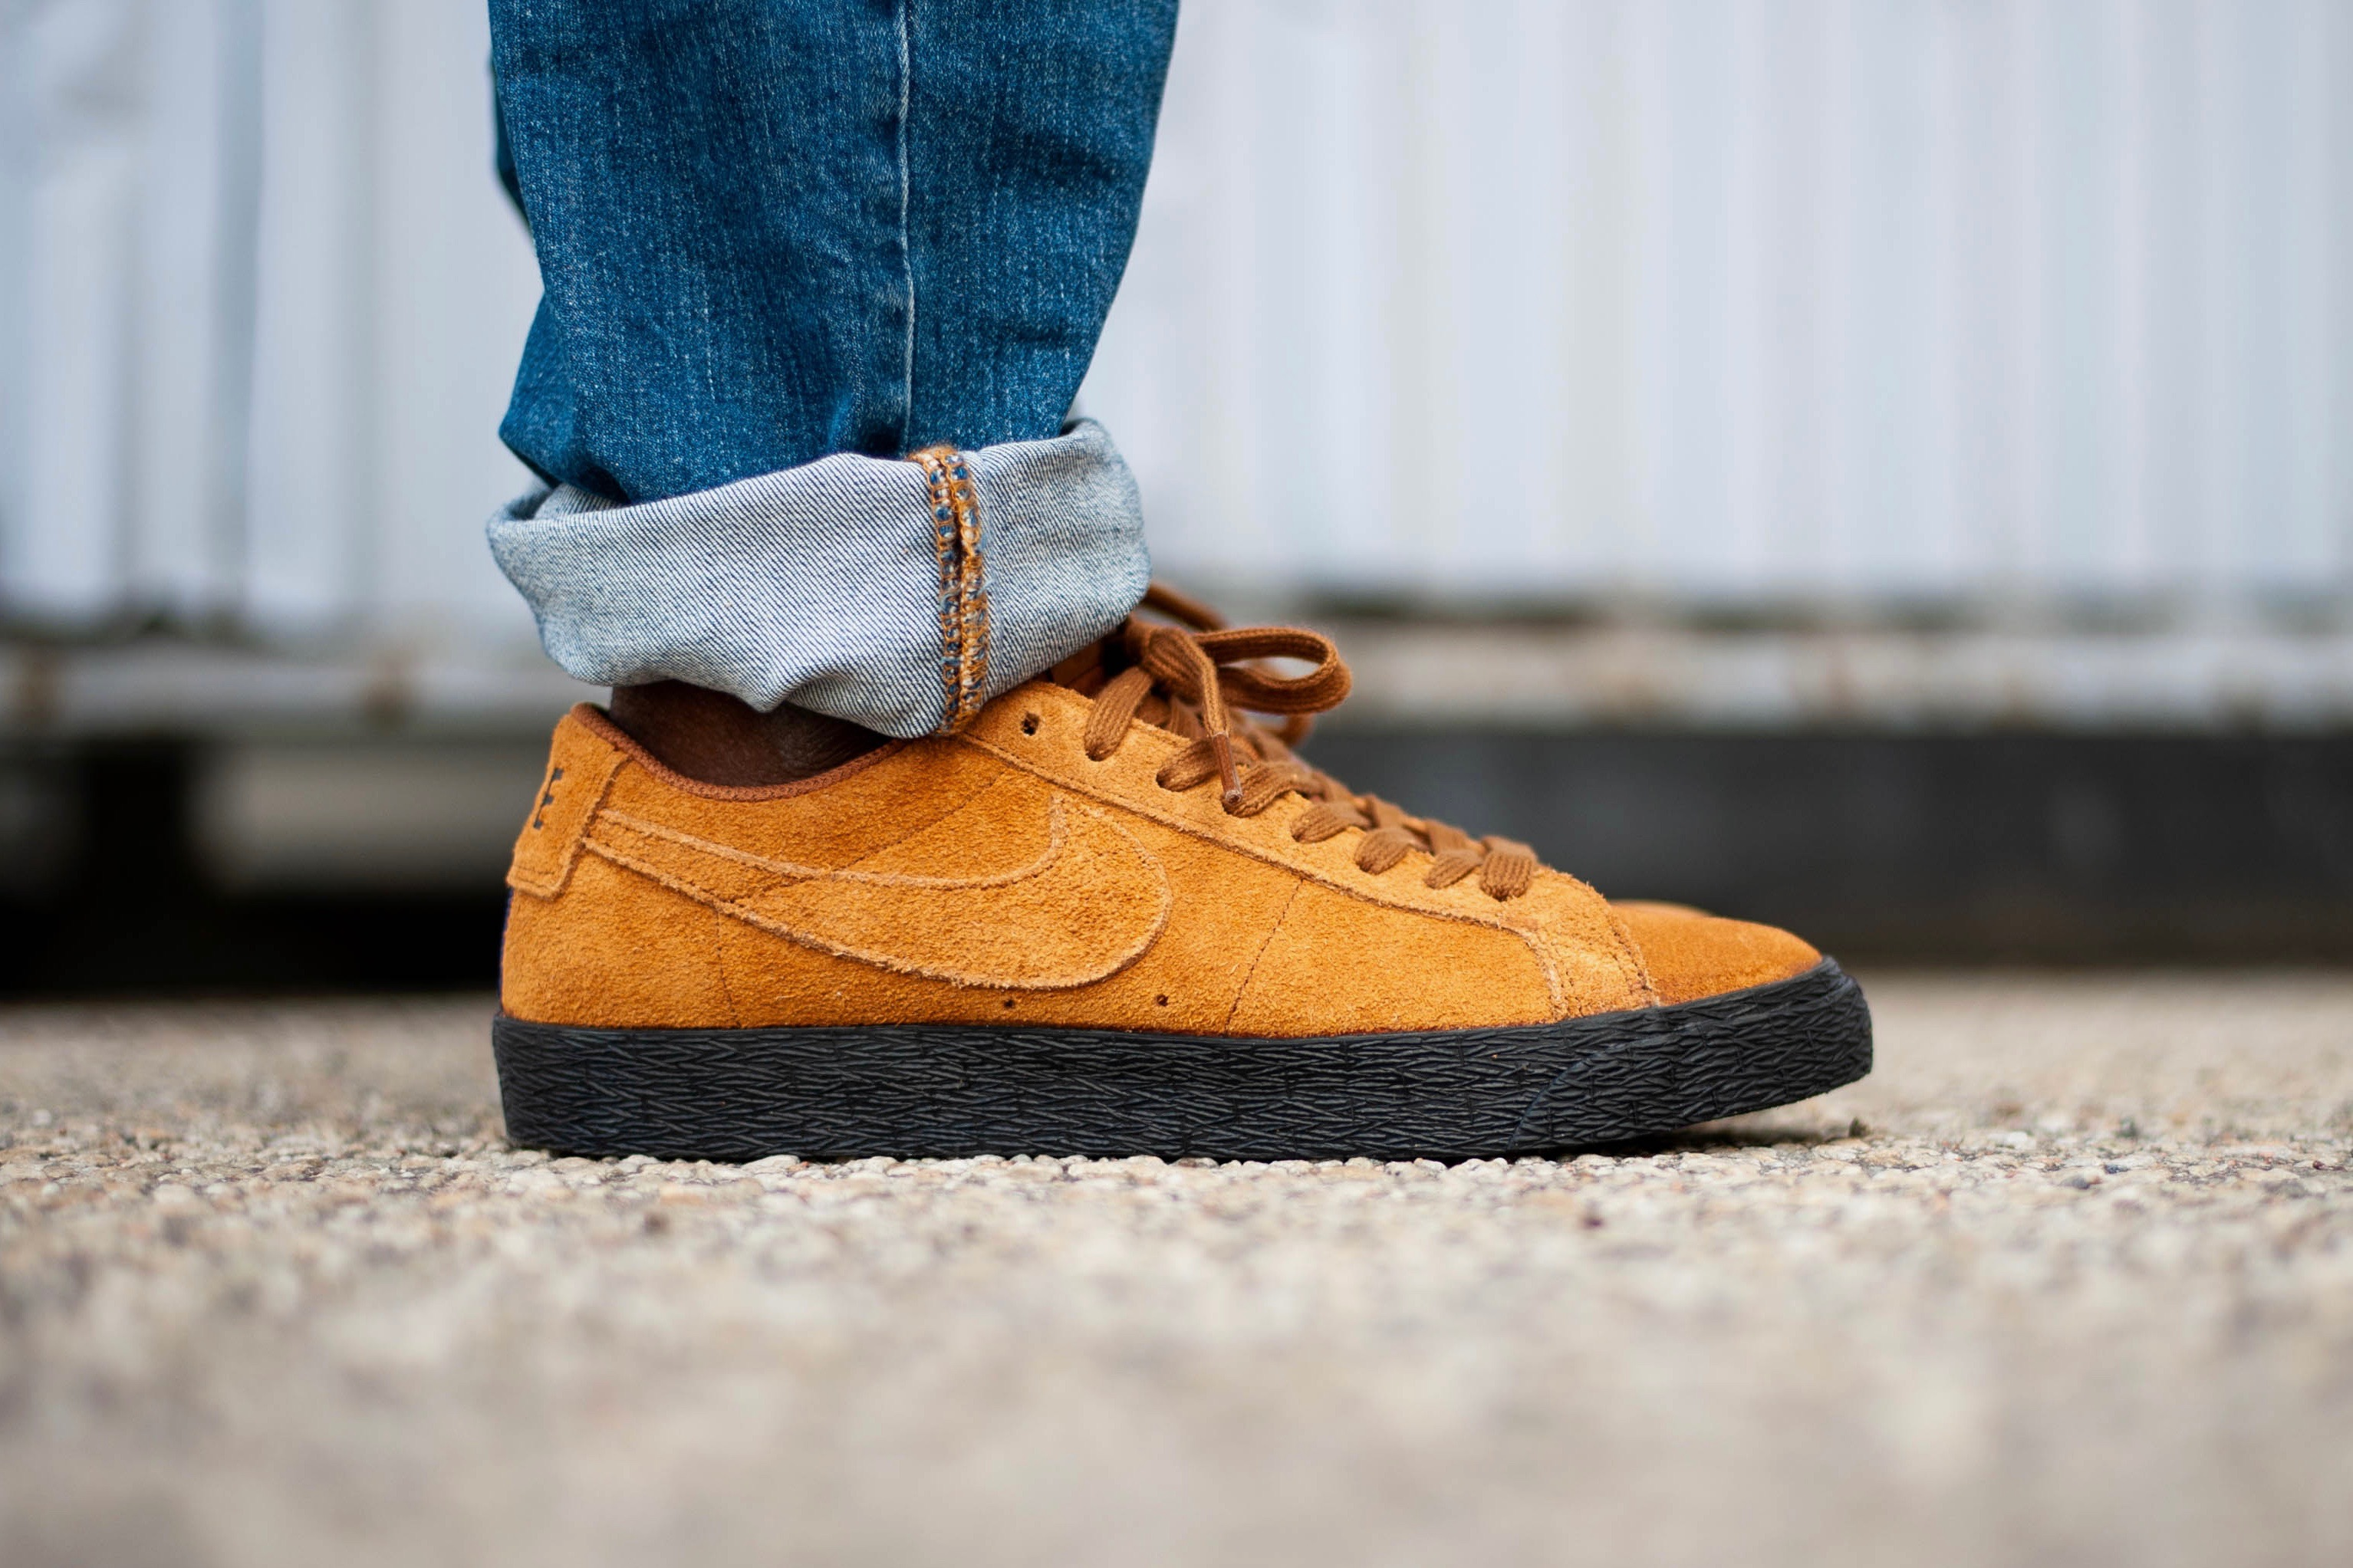 on sale 5f2f6 49ddd Nike SB Zoom Blazer Low - Light British Tan / Black